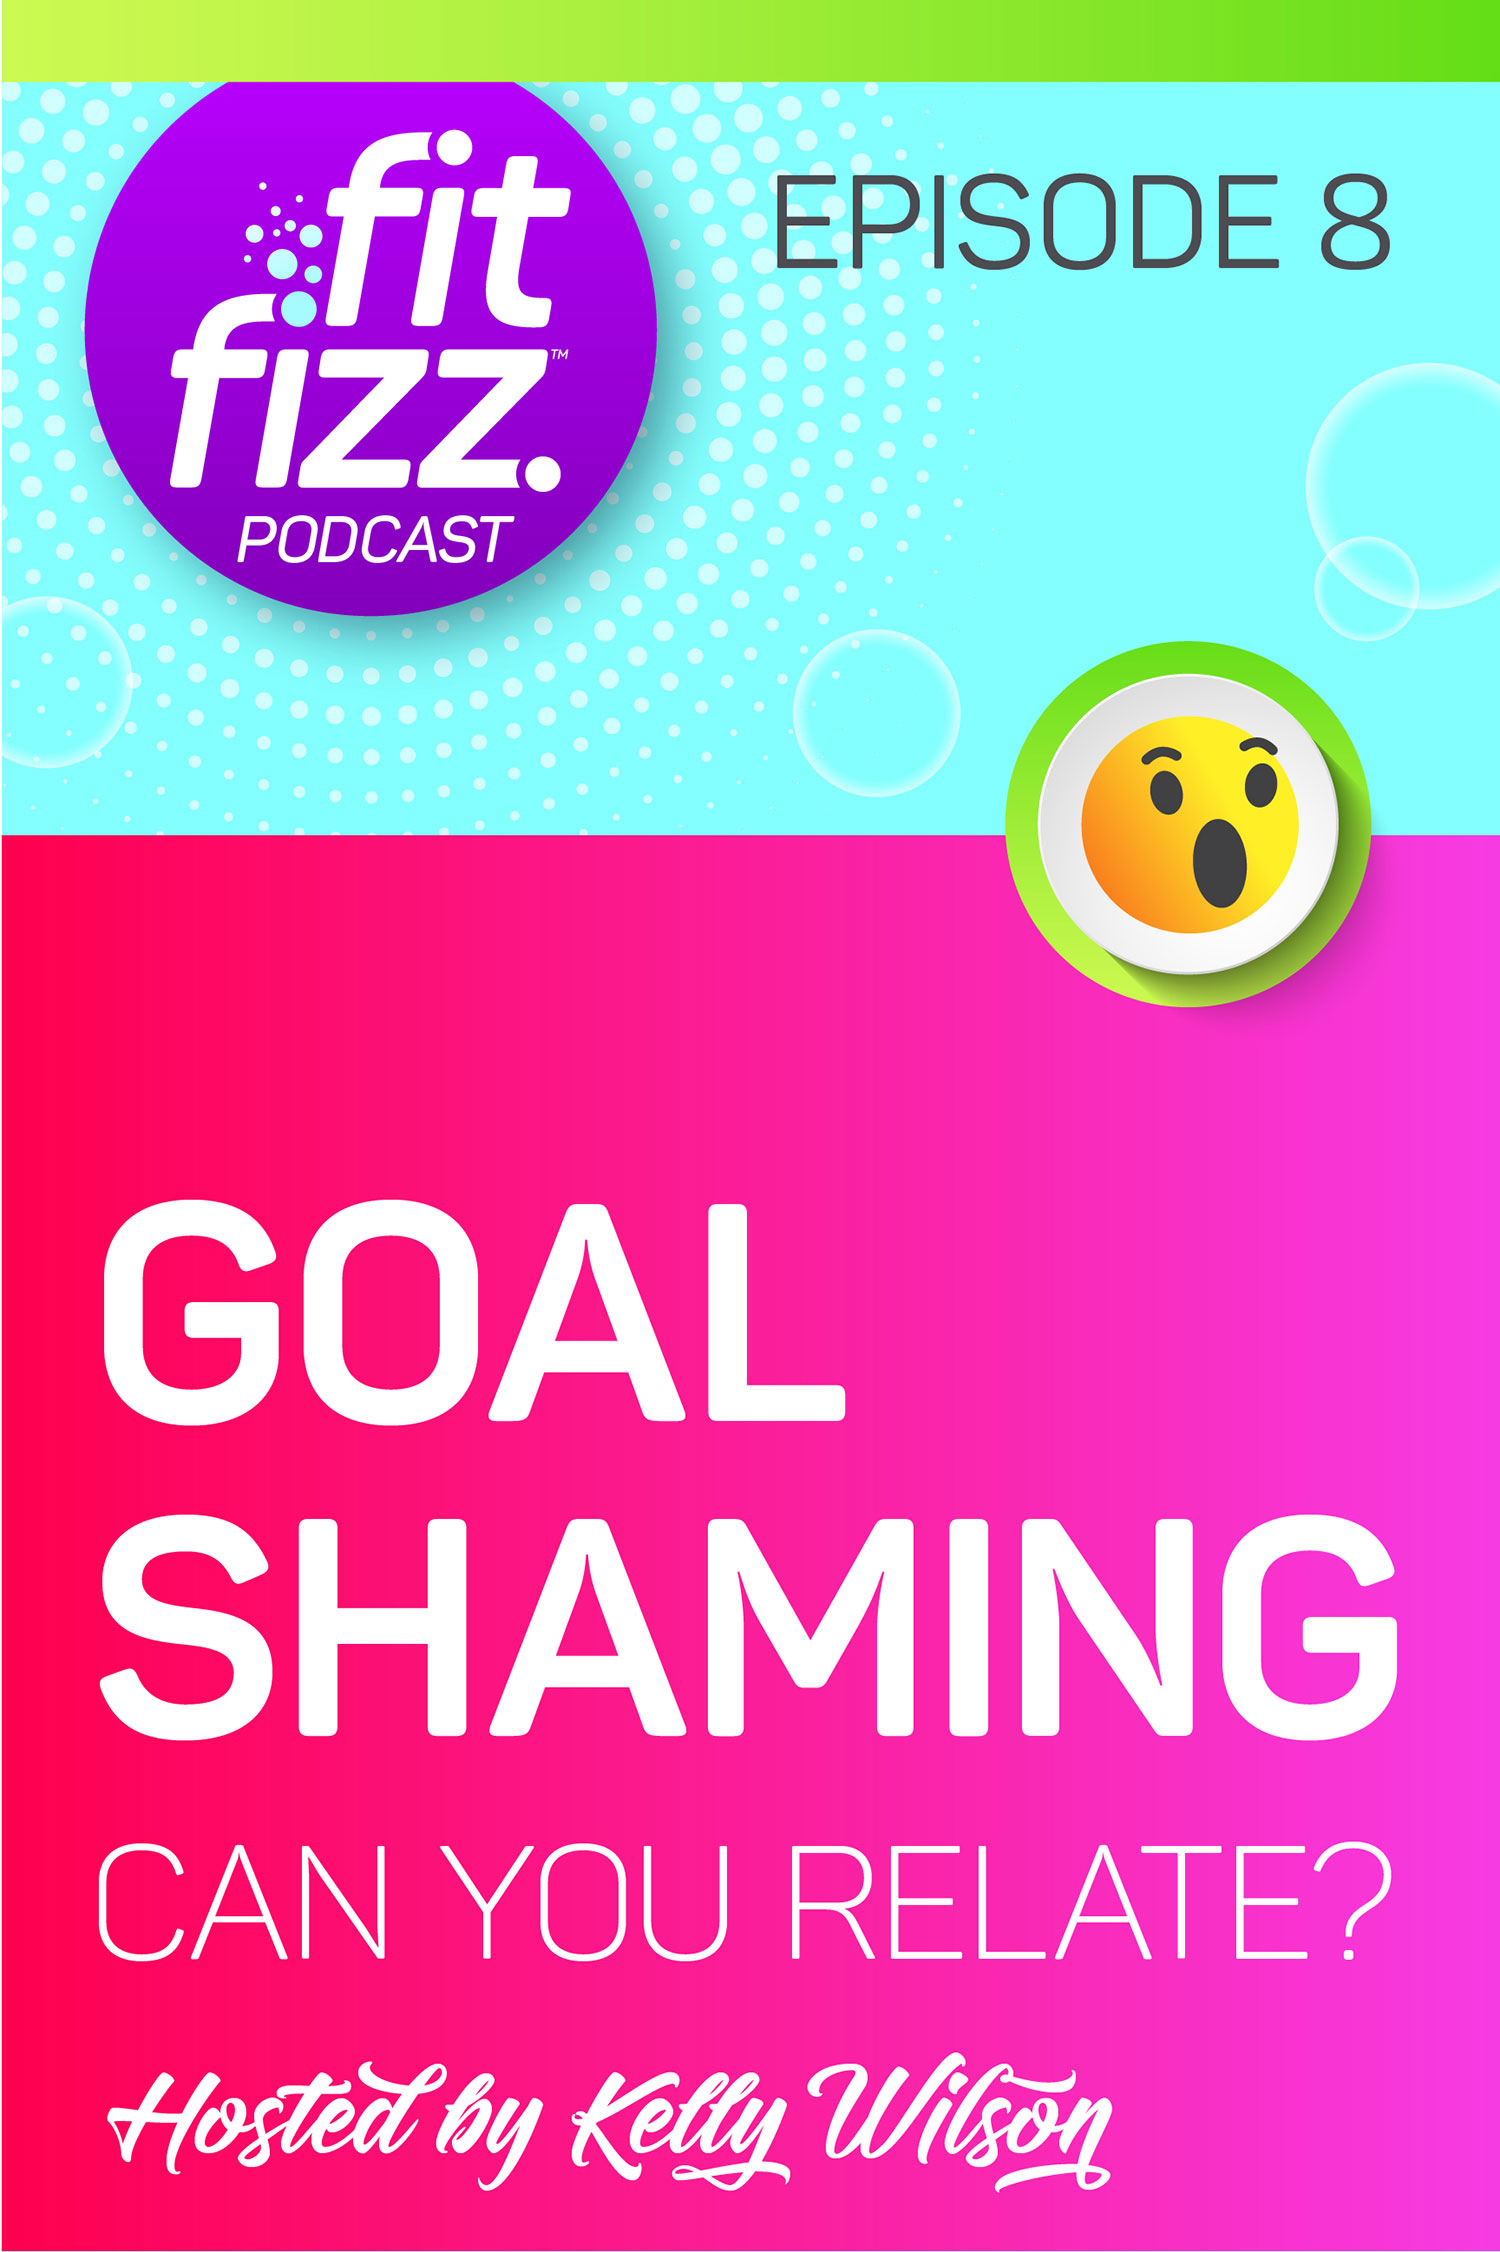 FitFizz Podcast Episode 8: Goal Shaming. Don't let anyone steal your joy or your goals!